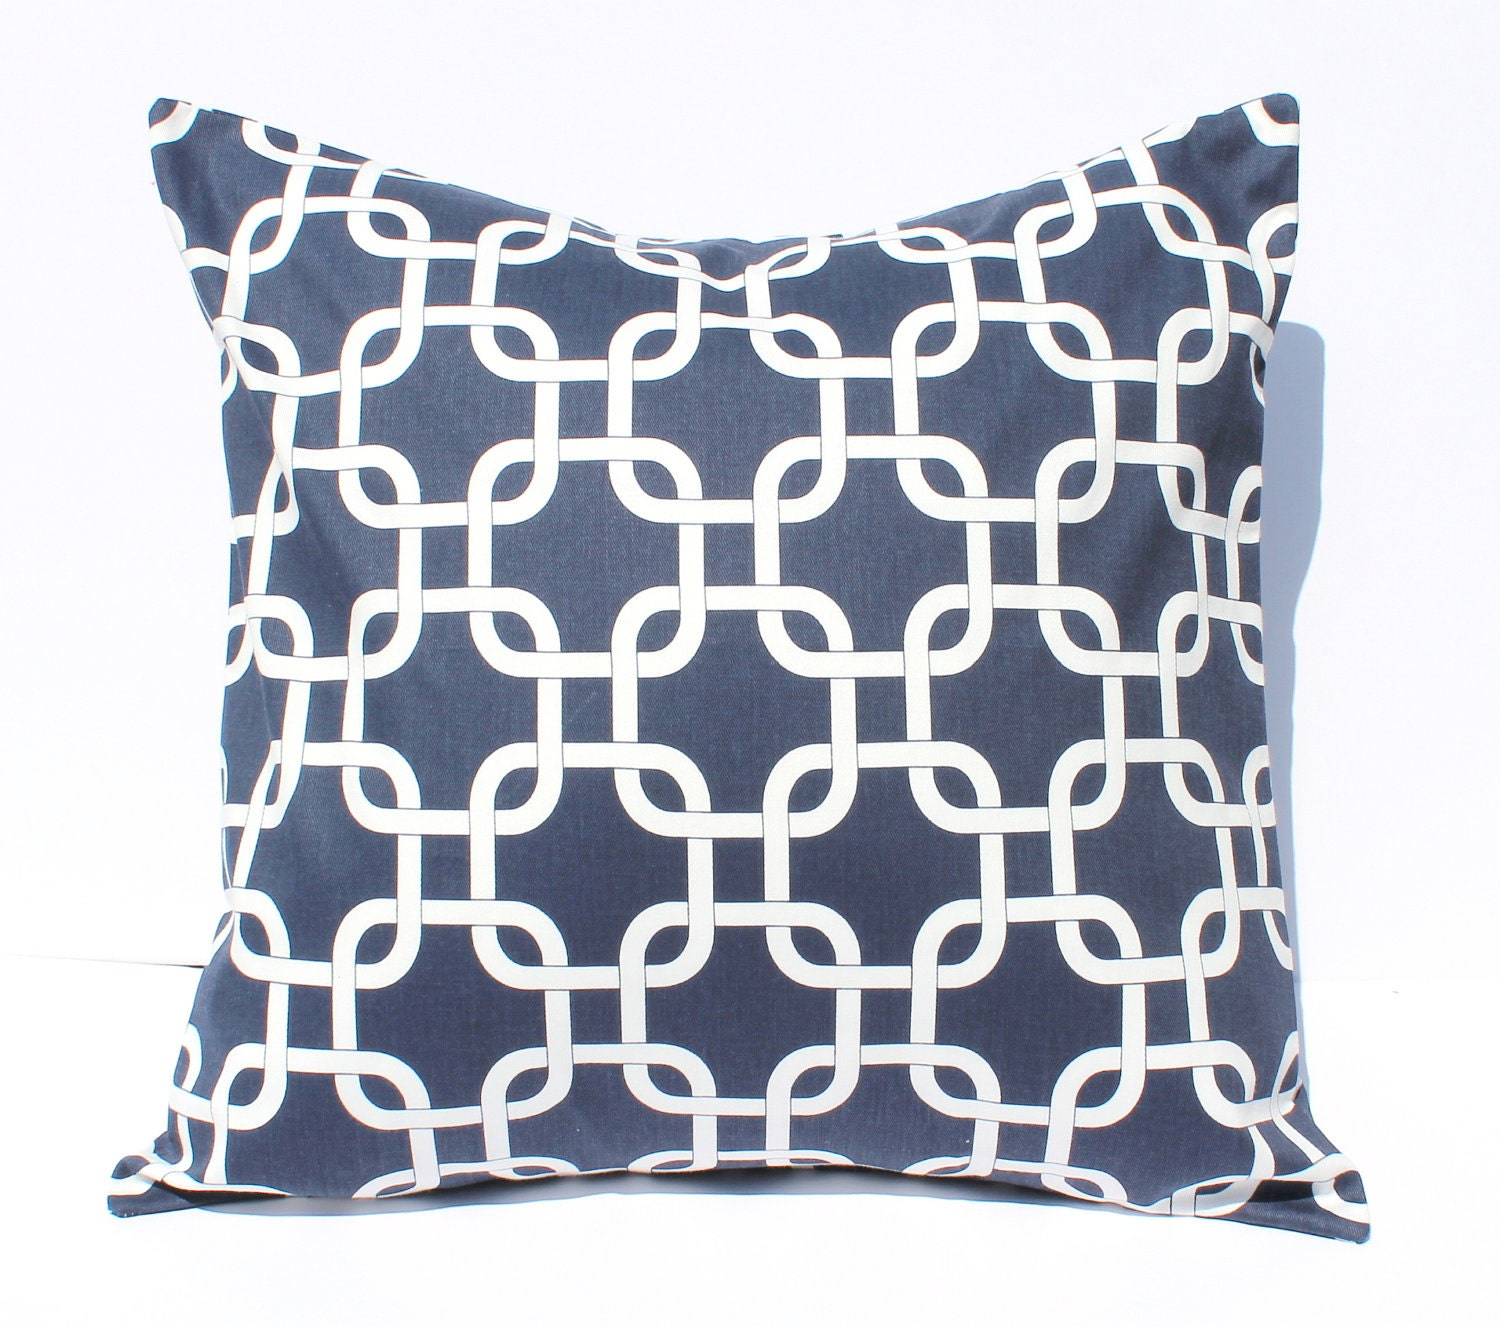 2 Decorative Pillows Covers - Navy Blue Geometric Links . 18 x 18 Cushions - SewGracious